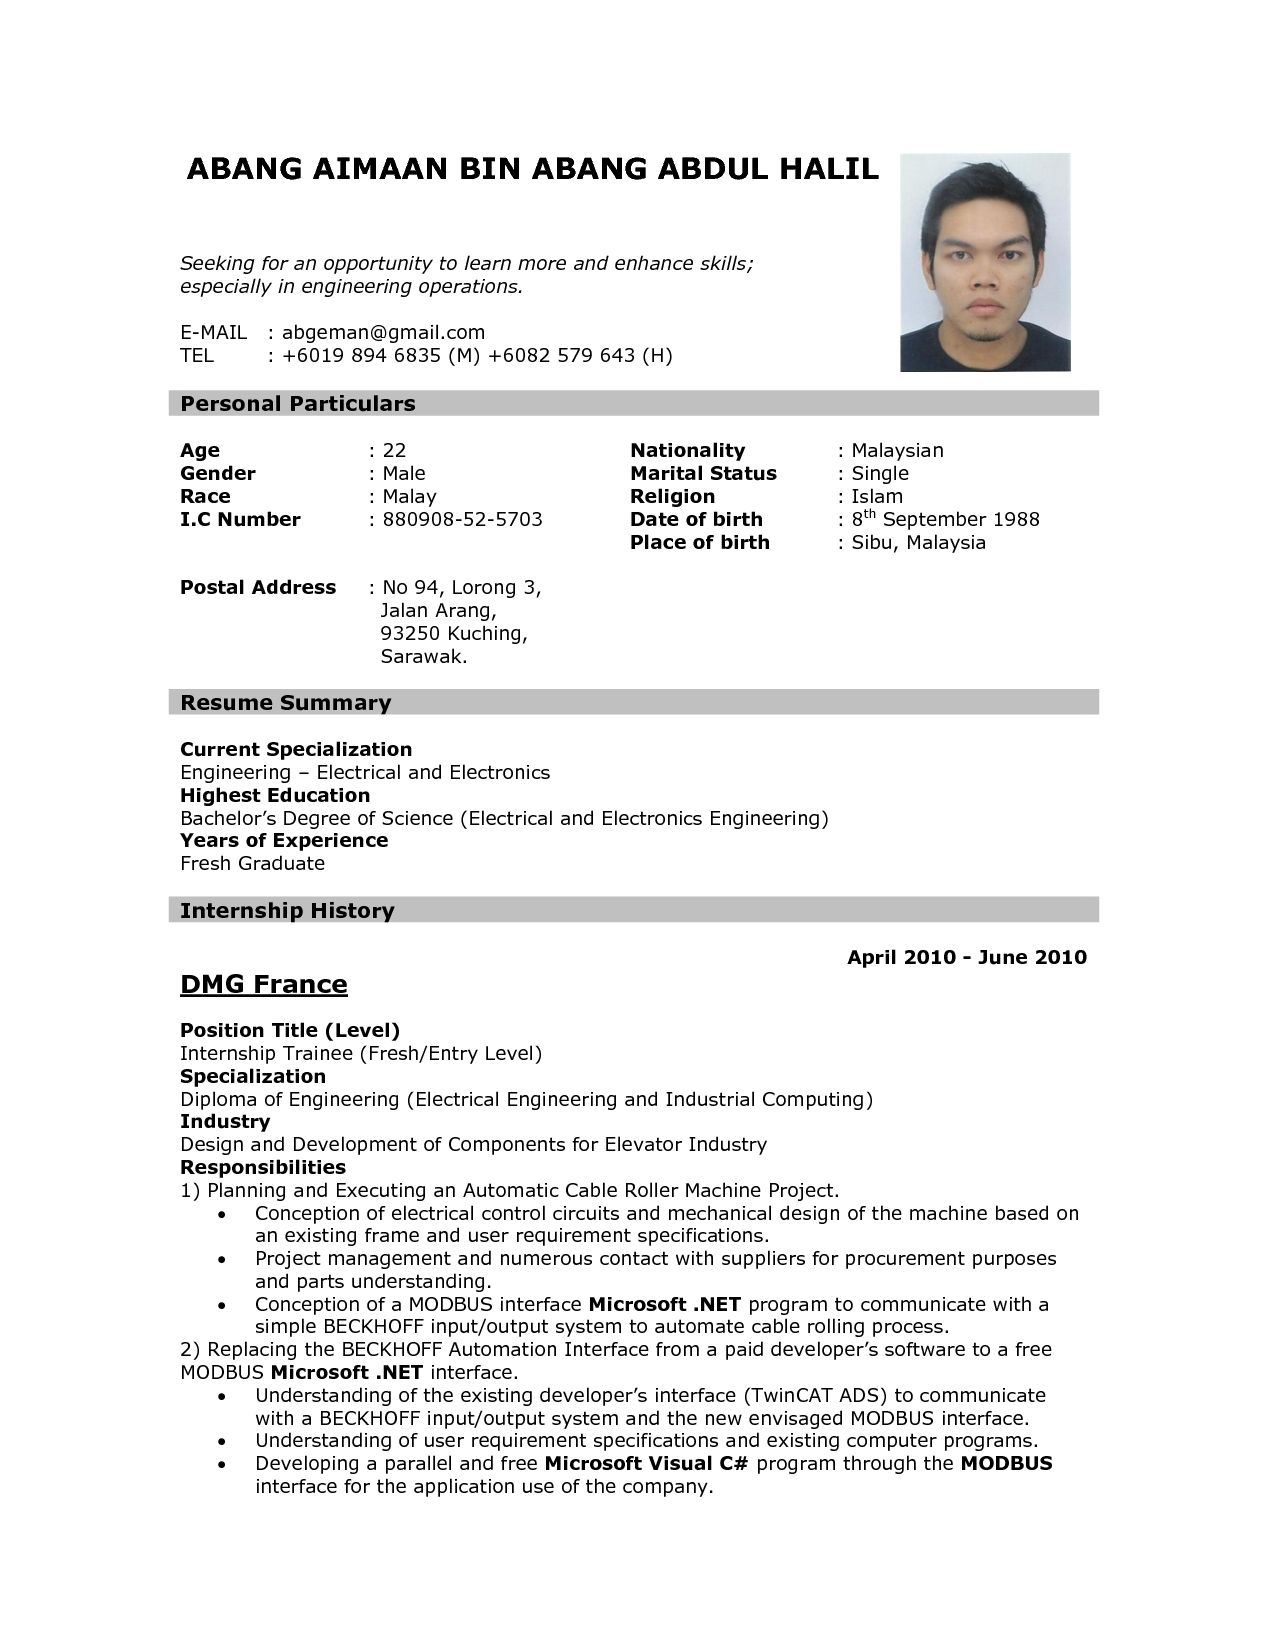 resume templates job template format image of for application nhl free builder iphone Resume Image Of Resume For Job Application